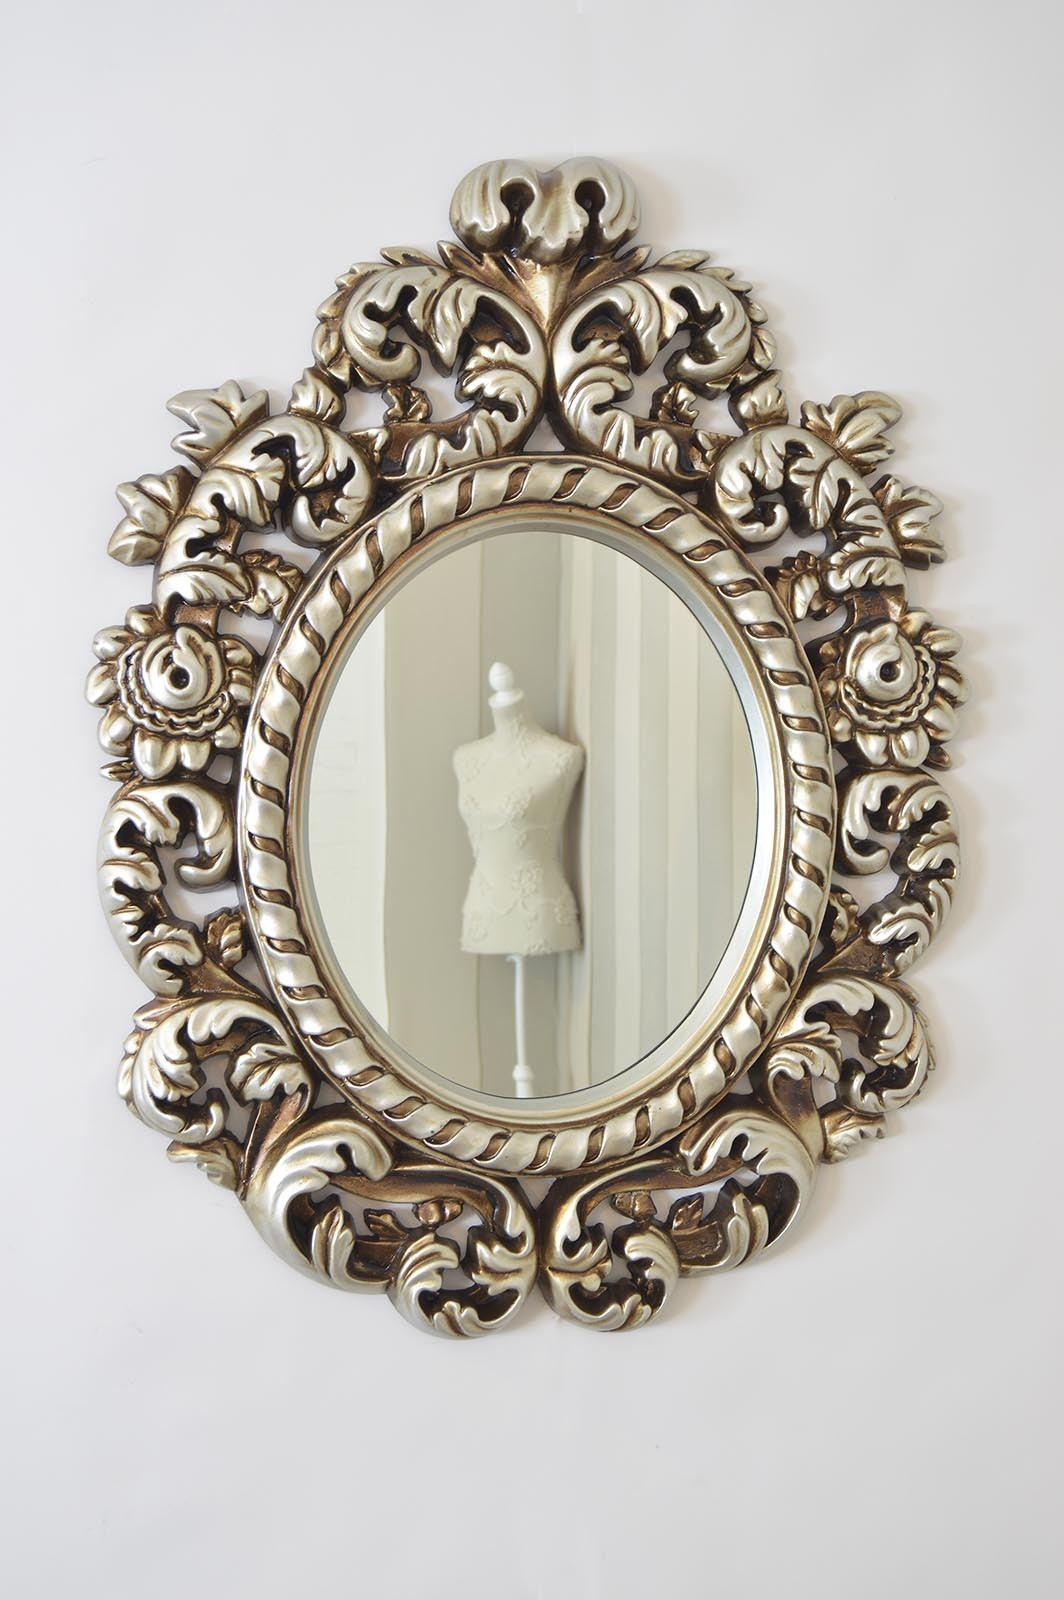 Large Decorative Silver Antique Style Portrait Wall Mirror 3ft3 X Inside Antique Style Mirrors Wall (Image 7 of 15)